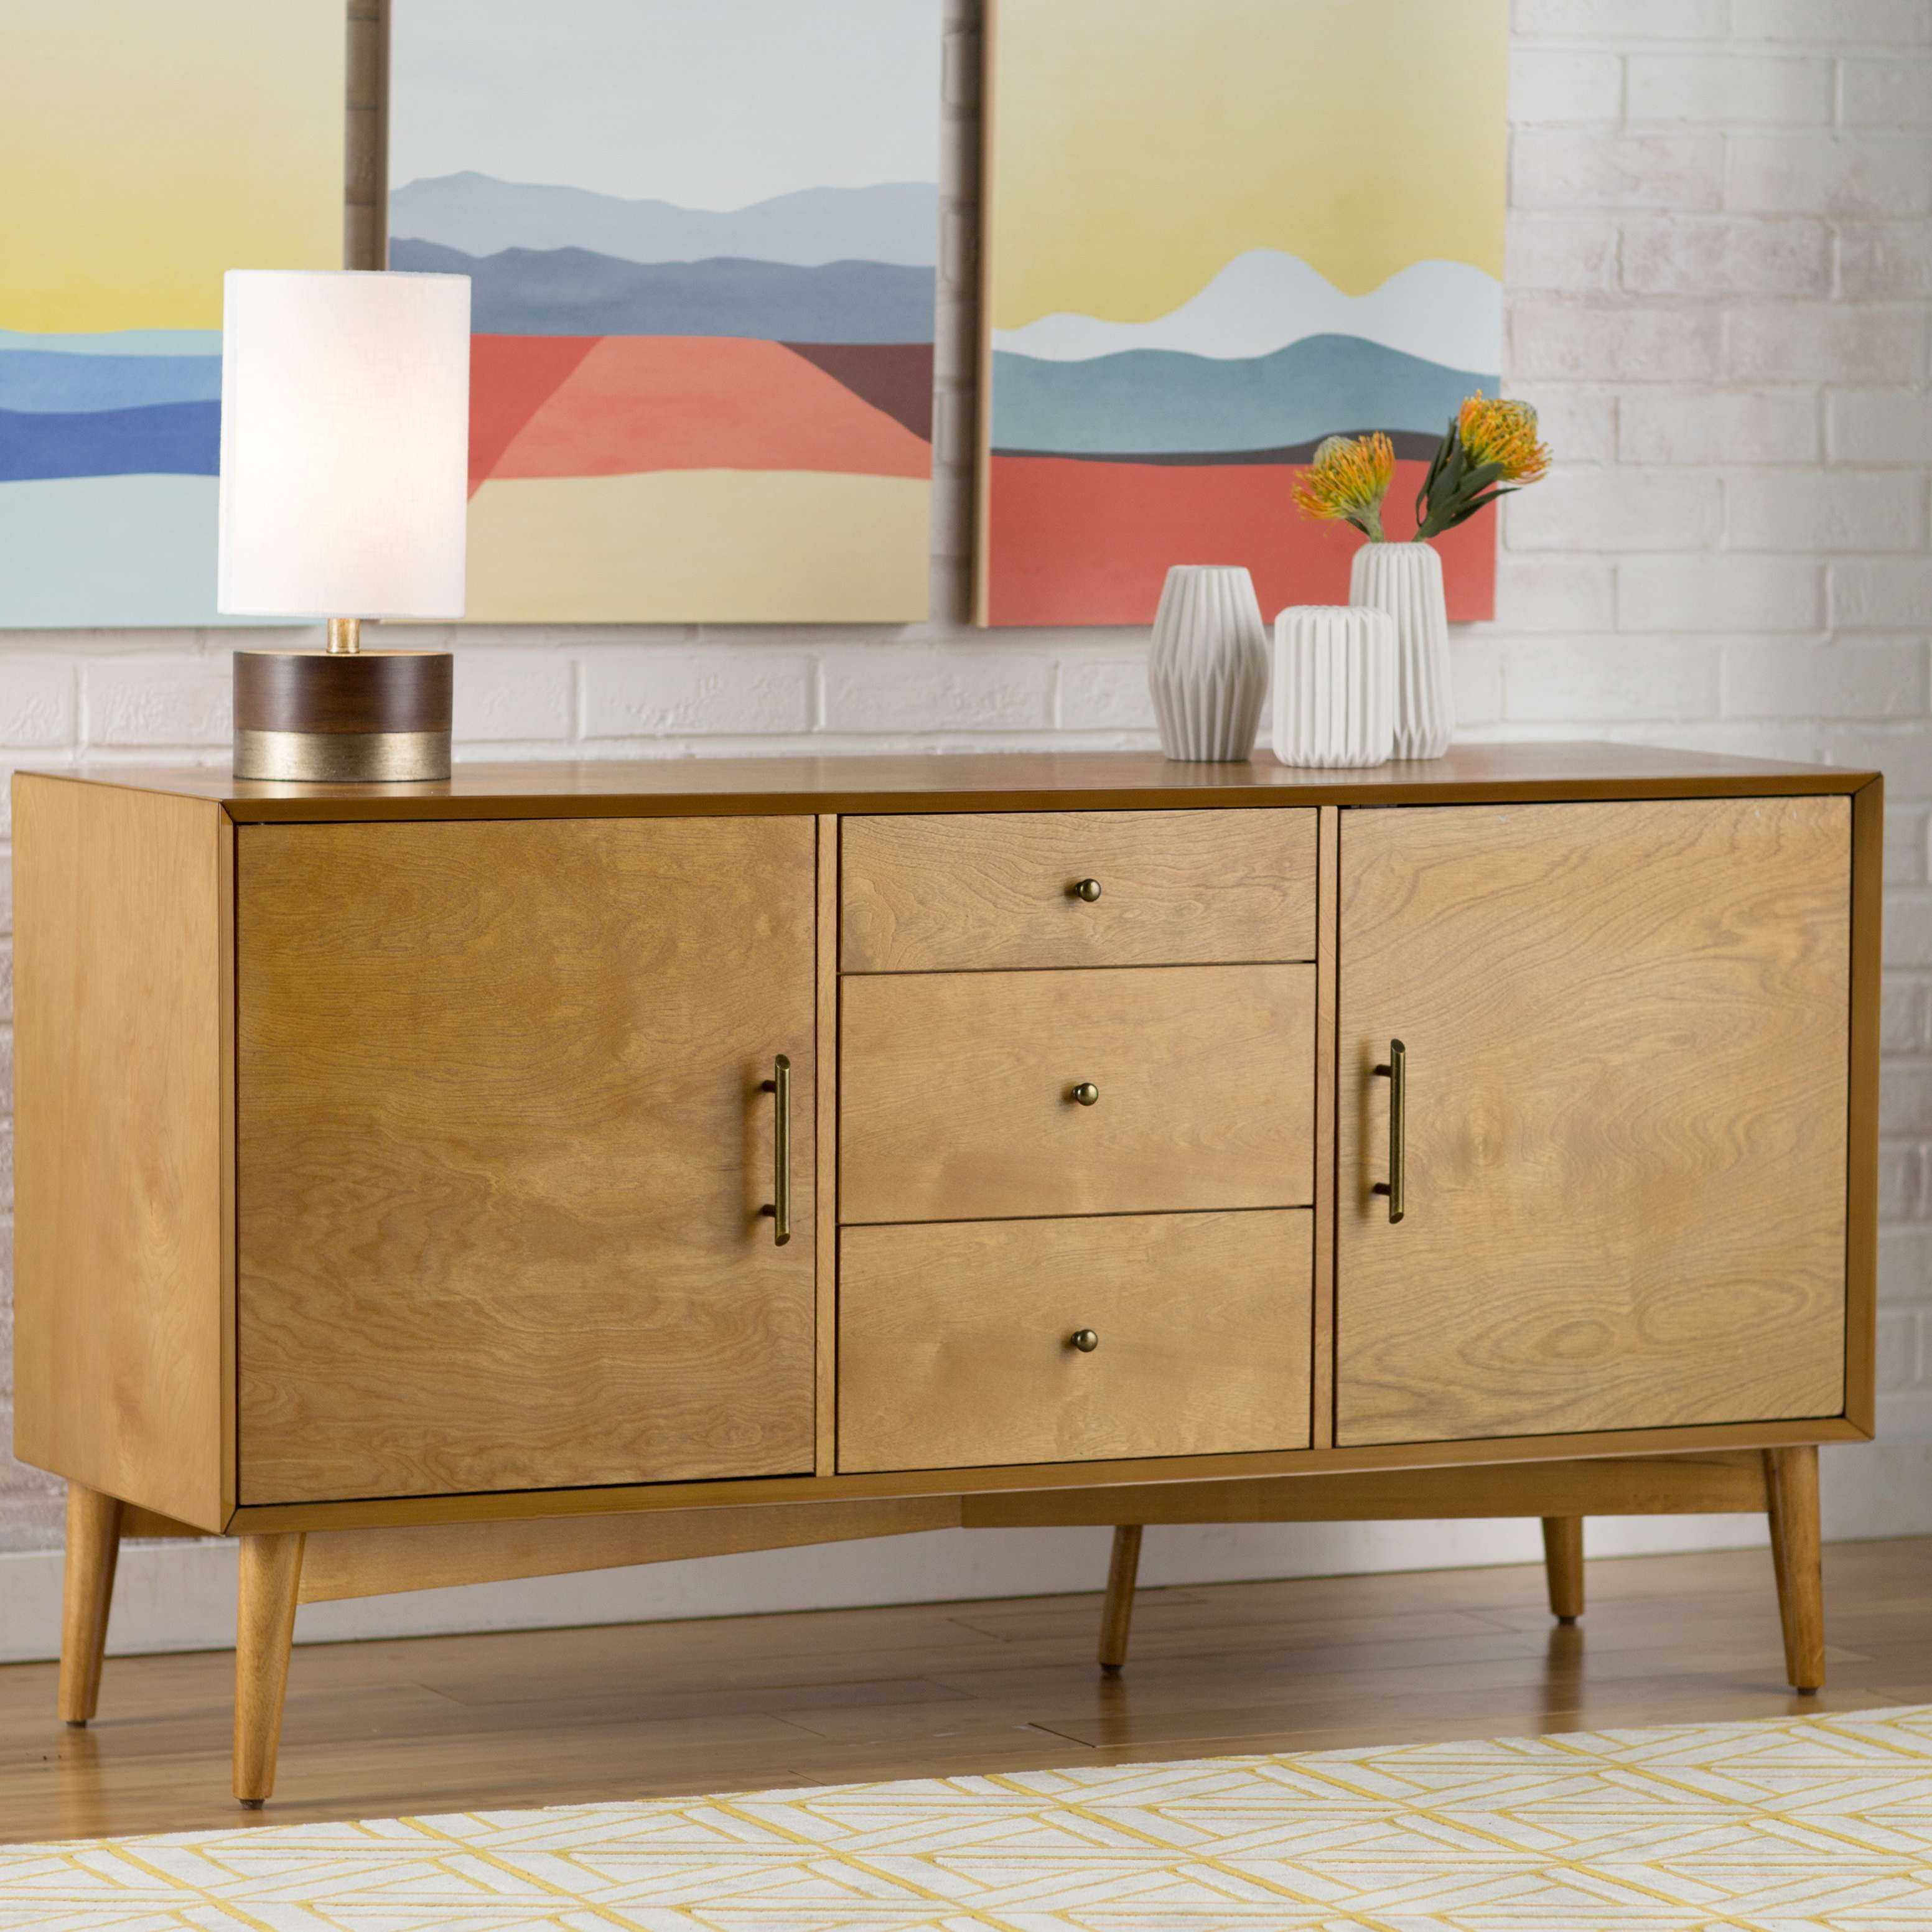 Langley Street Easmor Sideboard & Reviews | Wayfair Intended For Magic The Gathering Sideboards (View 11 of 24)